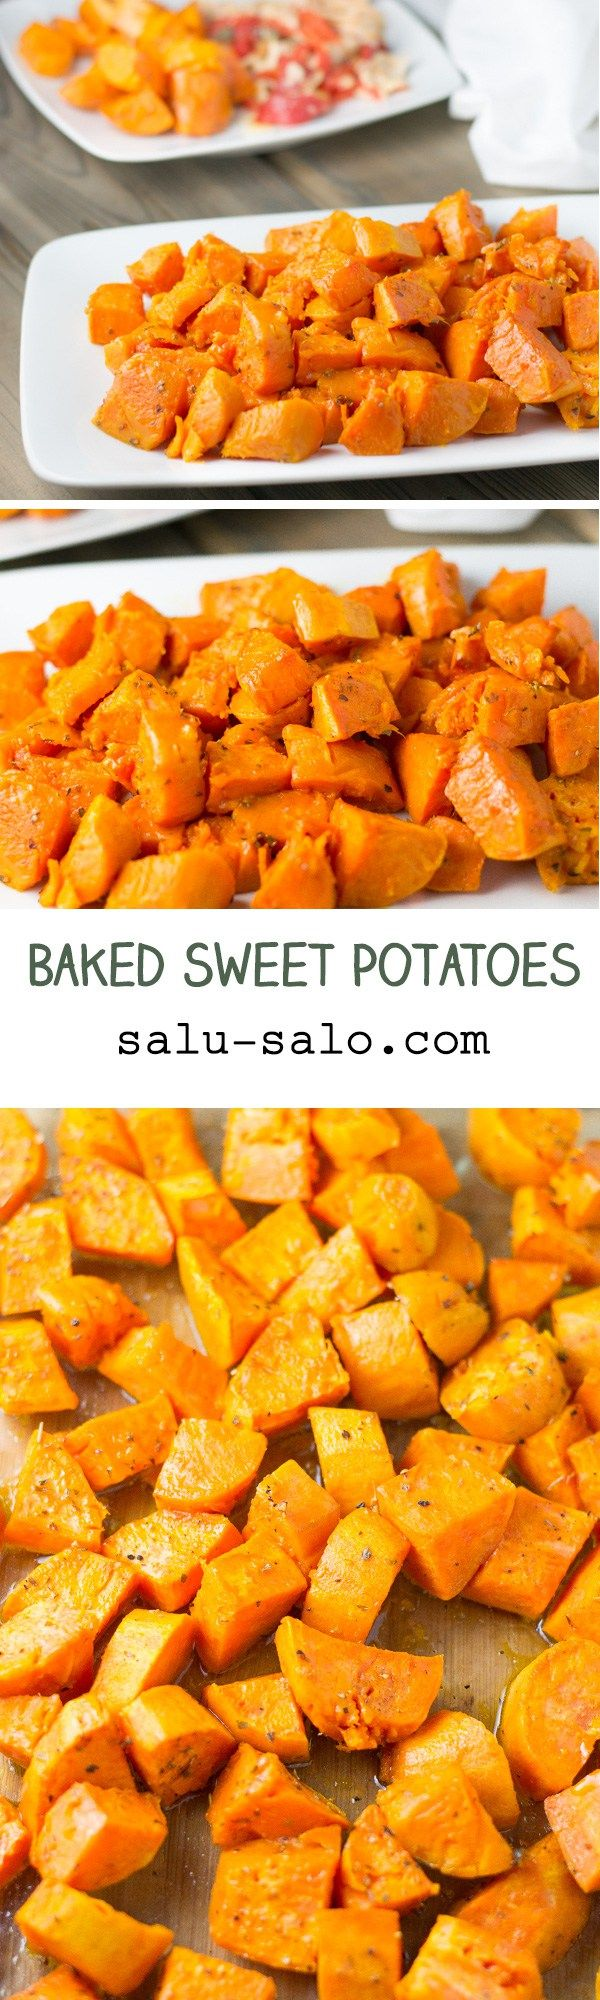 These baked sweet potatoes are easy to prepare and make. The yam is coated with olive oil, oregano, salt and pepper and then baked in the oven for an hour.